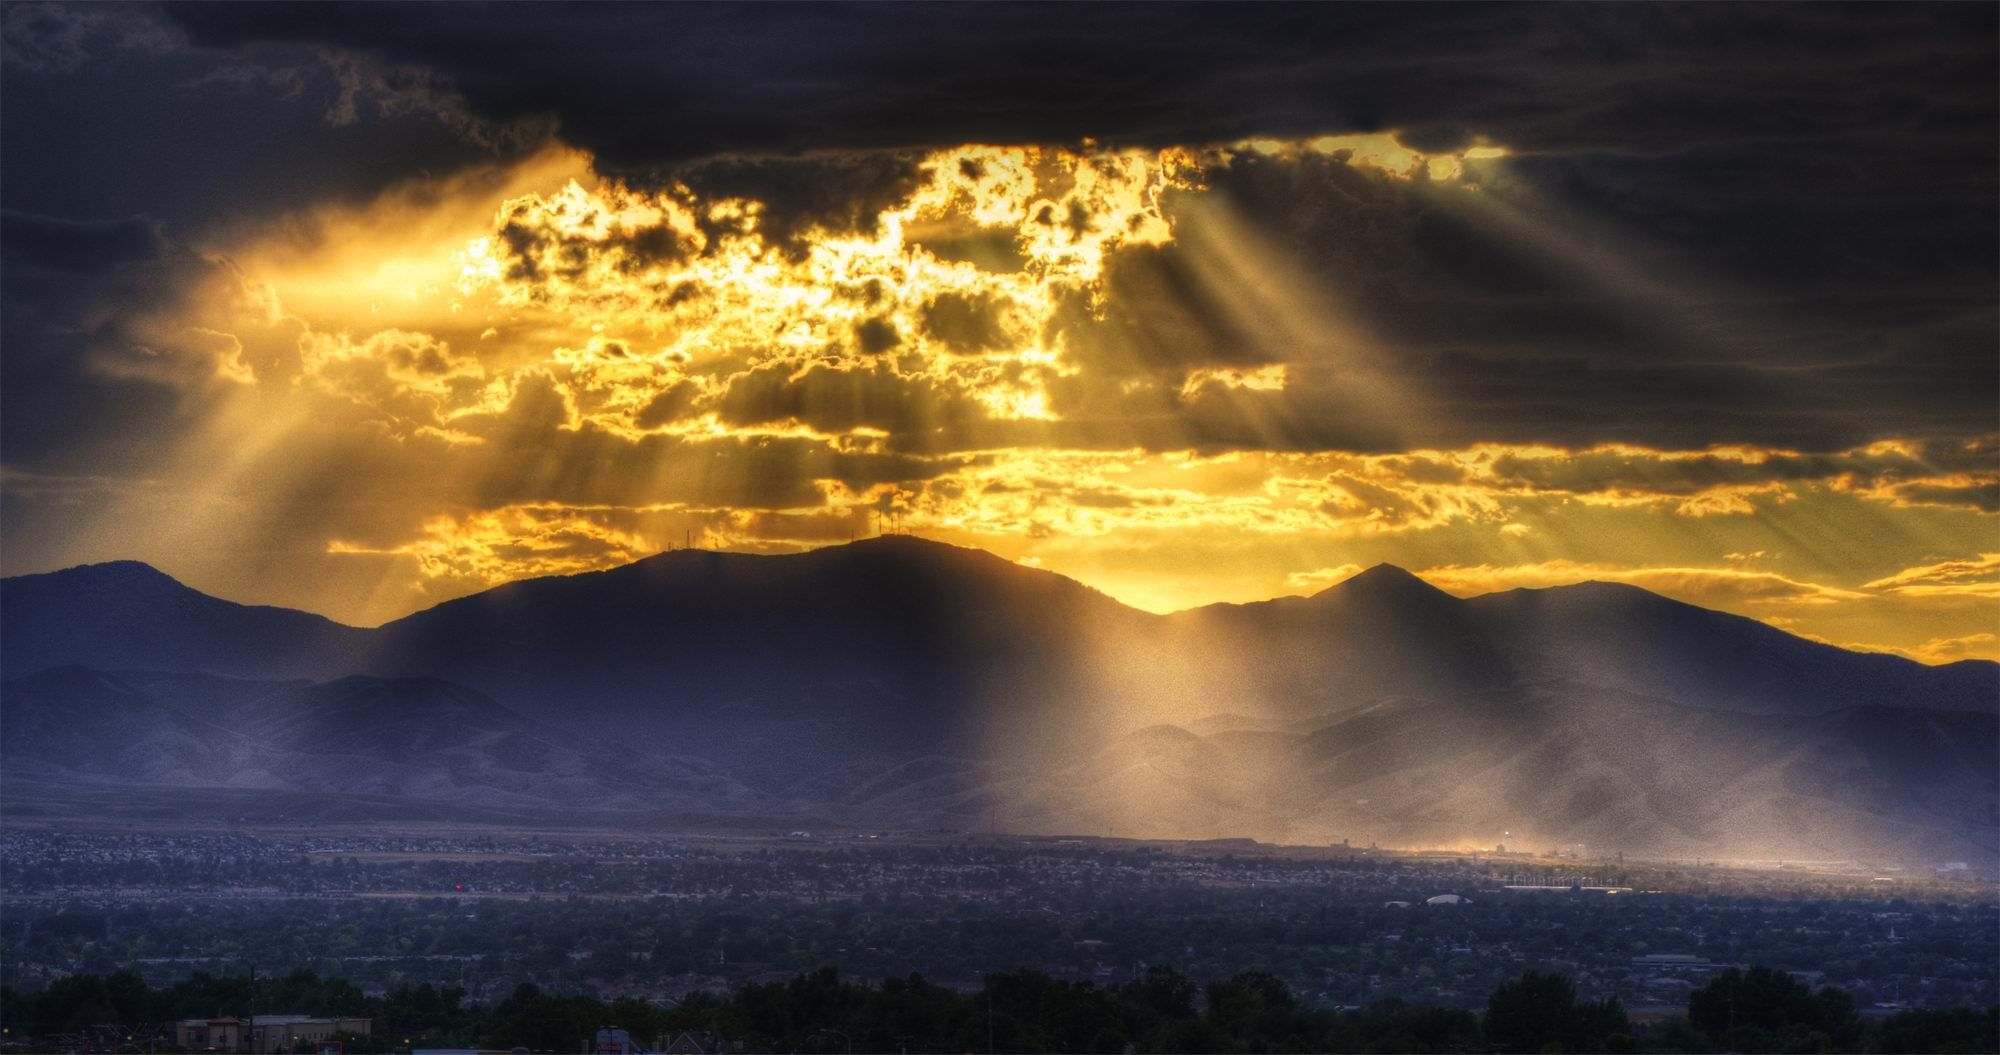 Cool Sunset Mountain Landscape Hd Picture Sunset Landscape Landscape Photography Beautiful Landscape Photography